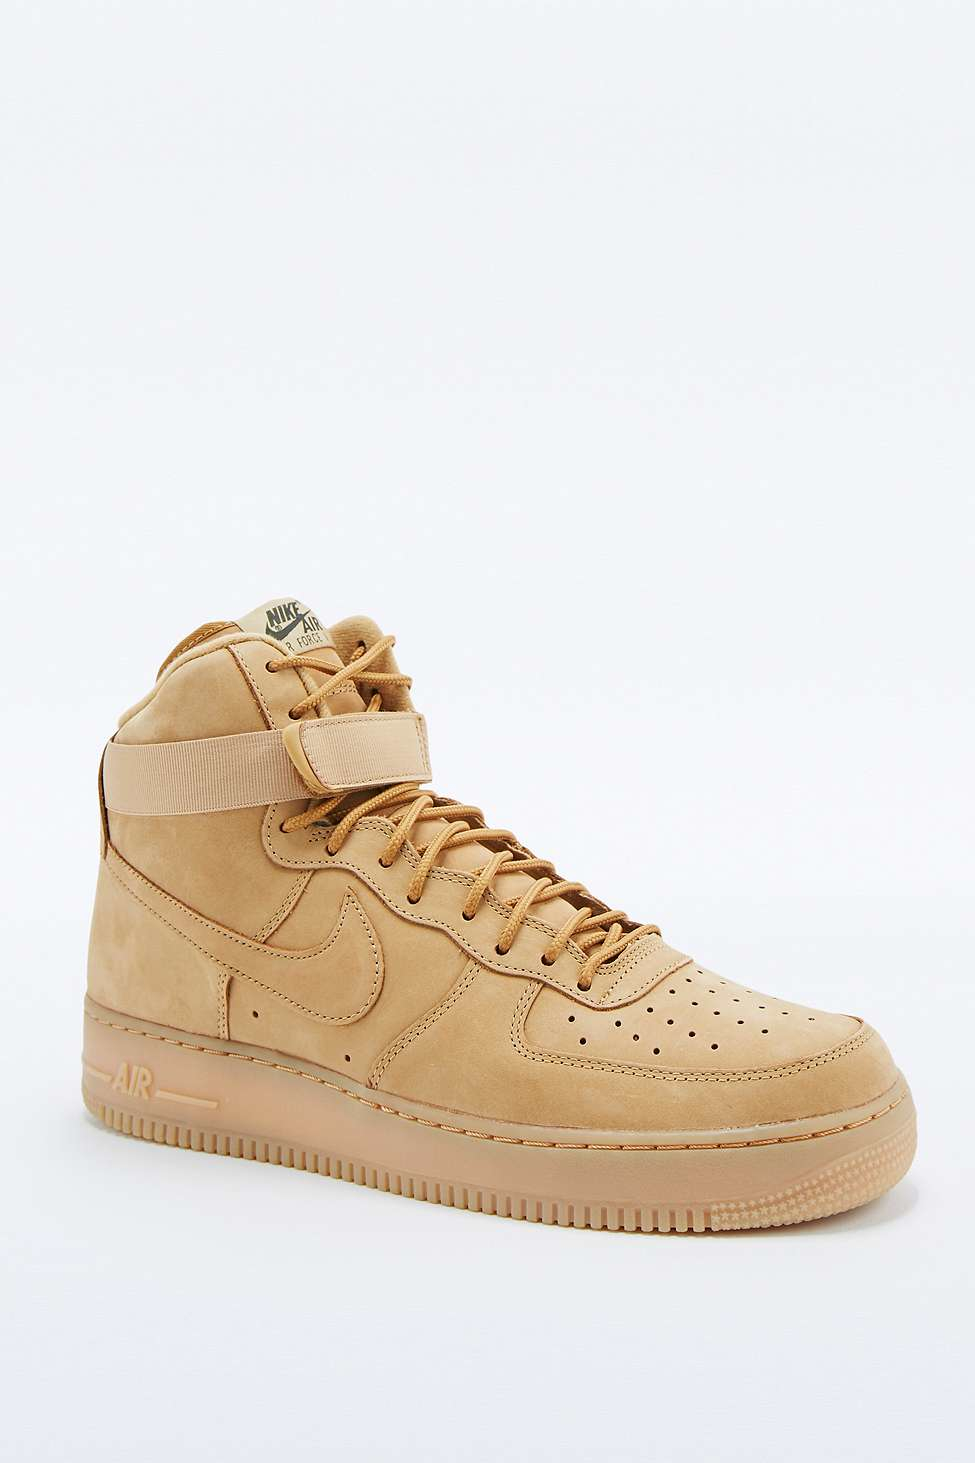 low priced a8f4d 8213a Nike Trainers Beige